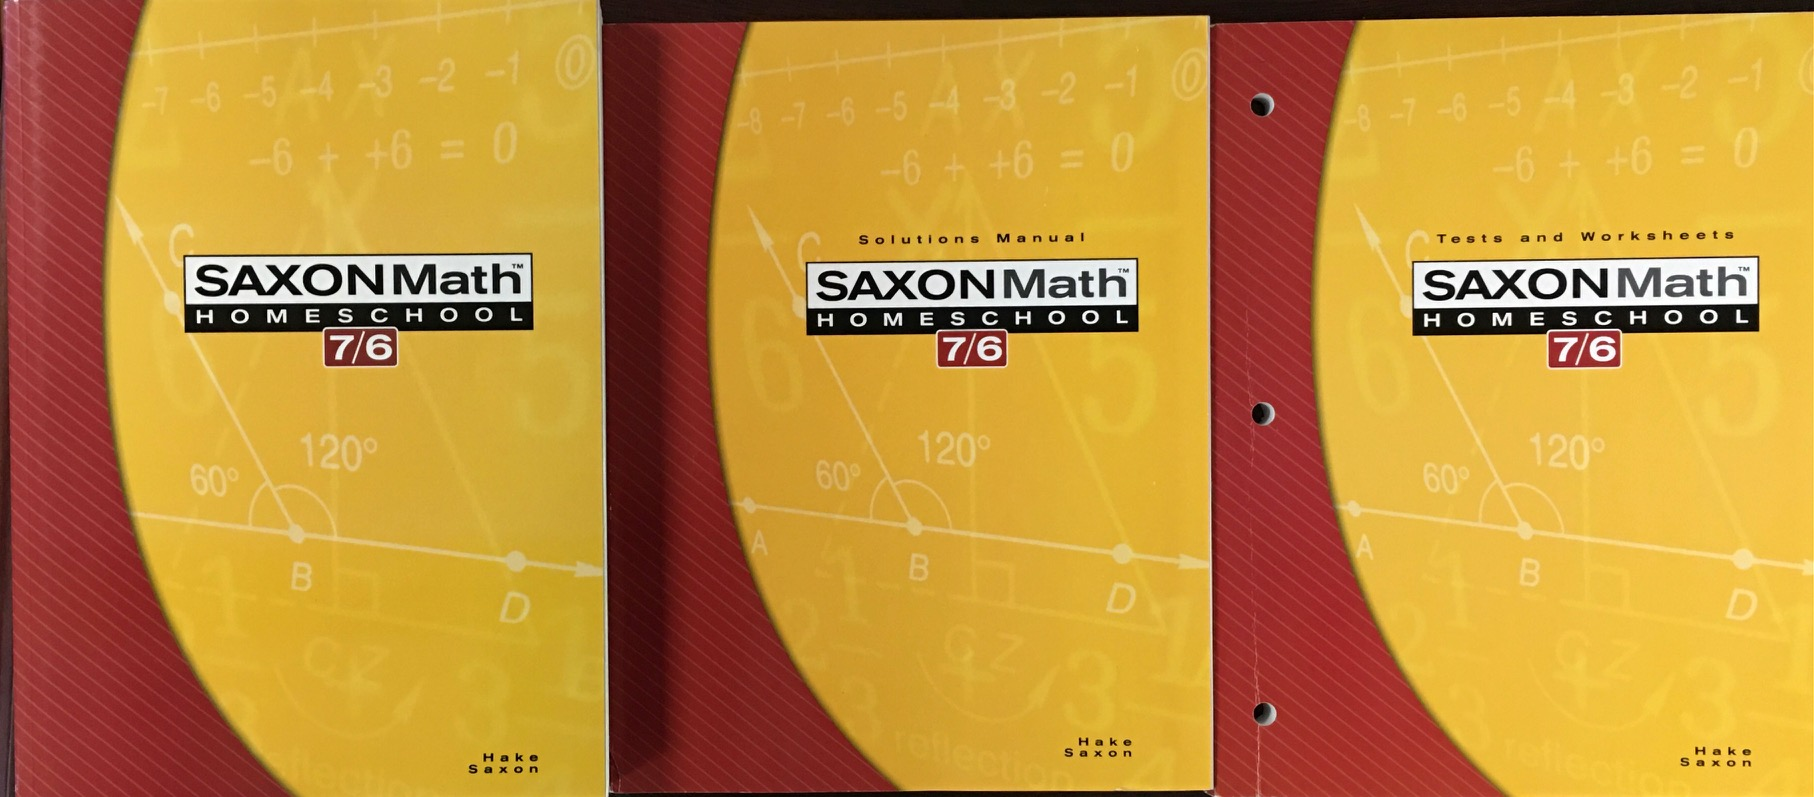 Image for Saxon Math Homeschool: 7/6 (Saxon Math 7/6 Homeschool)